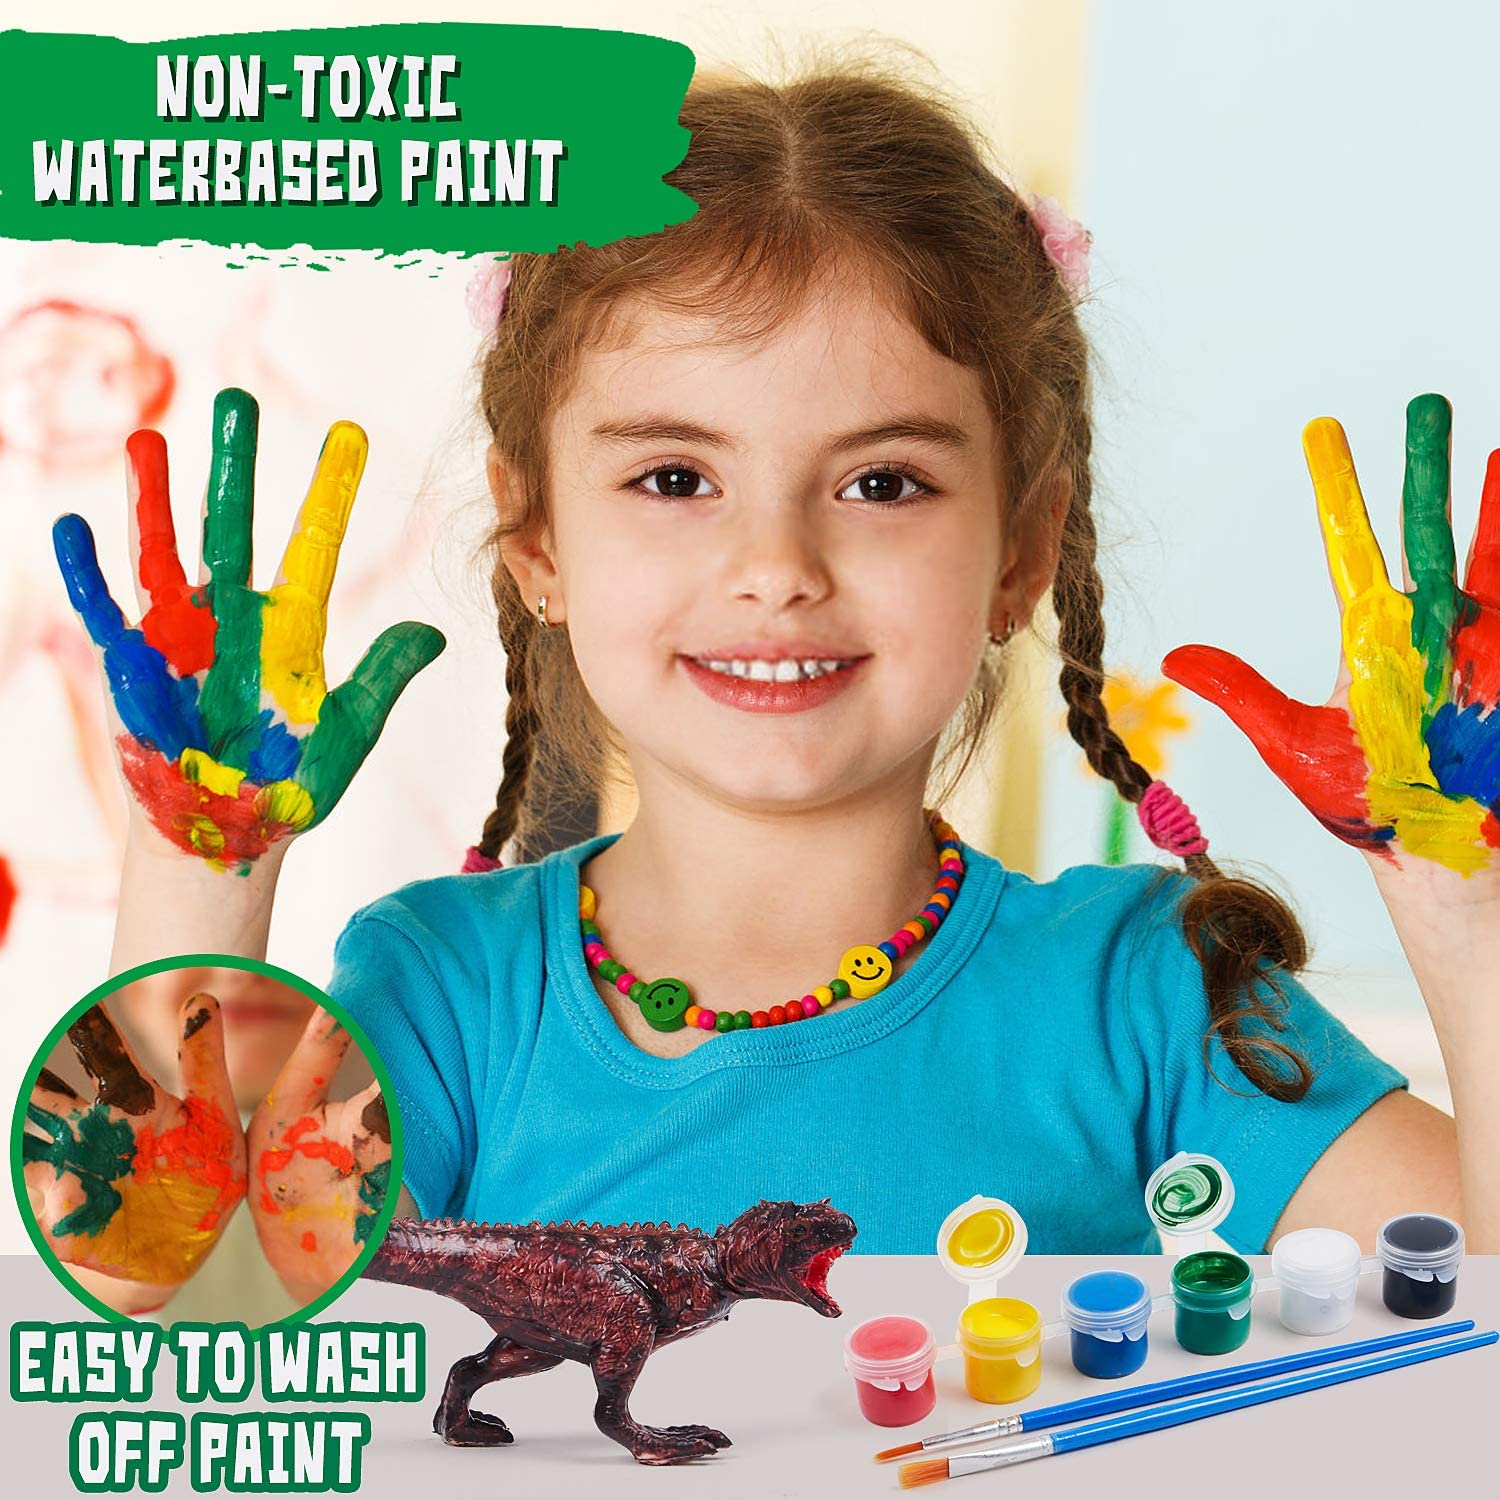 Toyssa 3D Painting Dinosaurs DIY Dinosaur Arts and Crafts Decorate Your Own Dinosaur Figurines with Play Mat for Kids Boys Girls